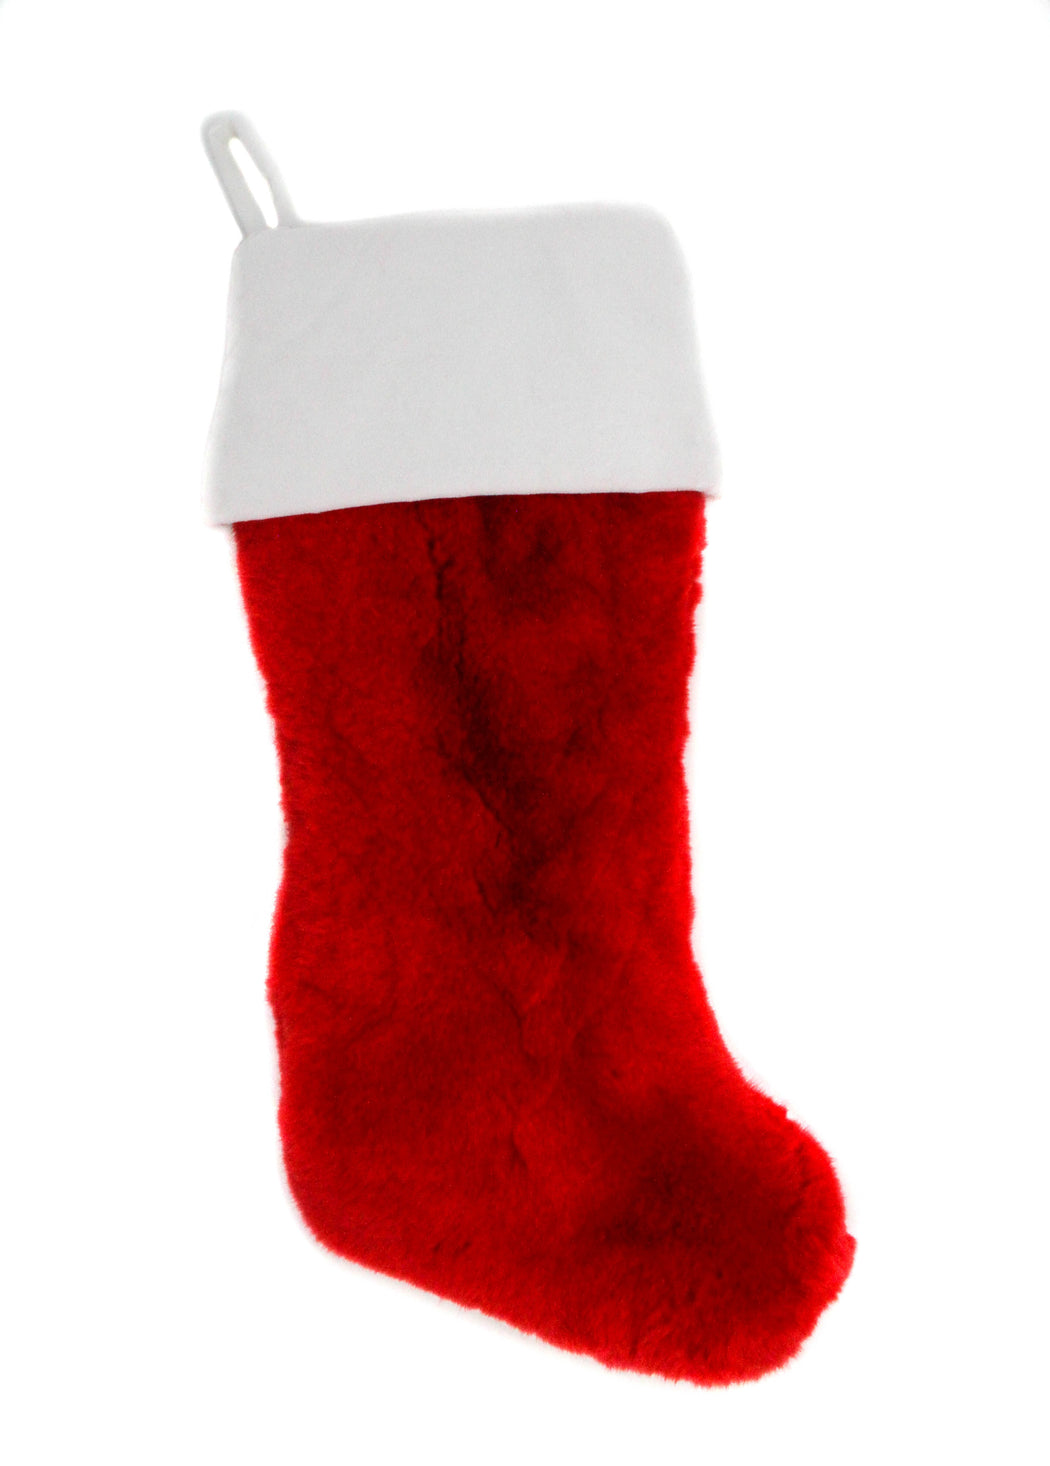 The Rex Rabbit Christmas Stocking in Red